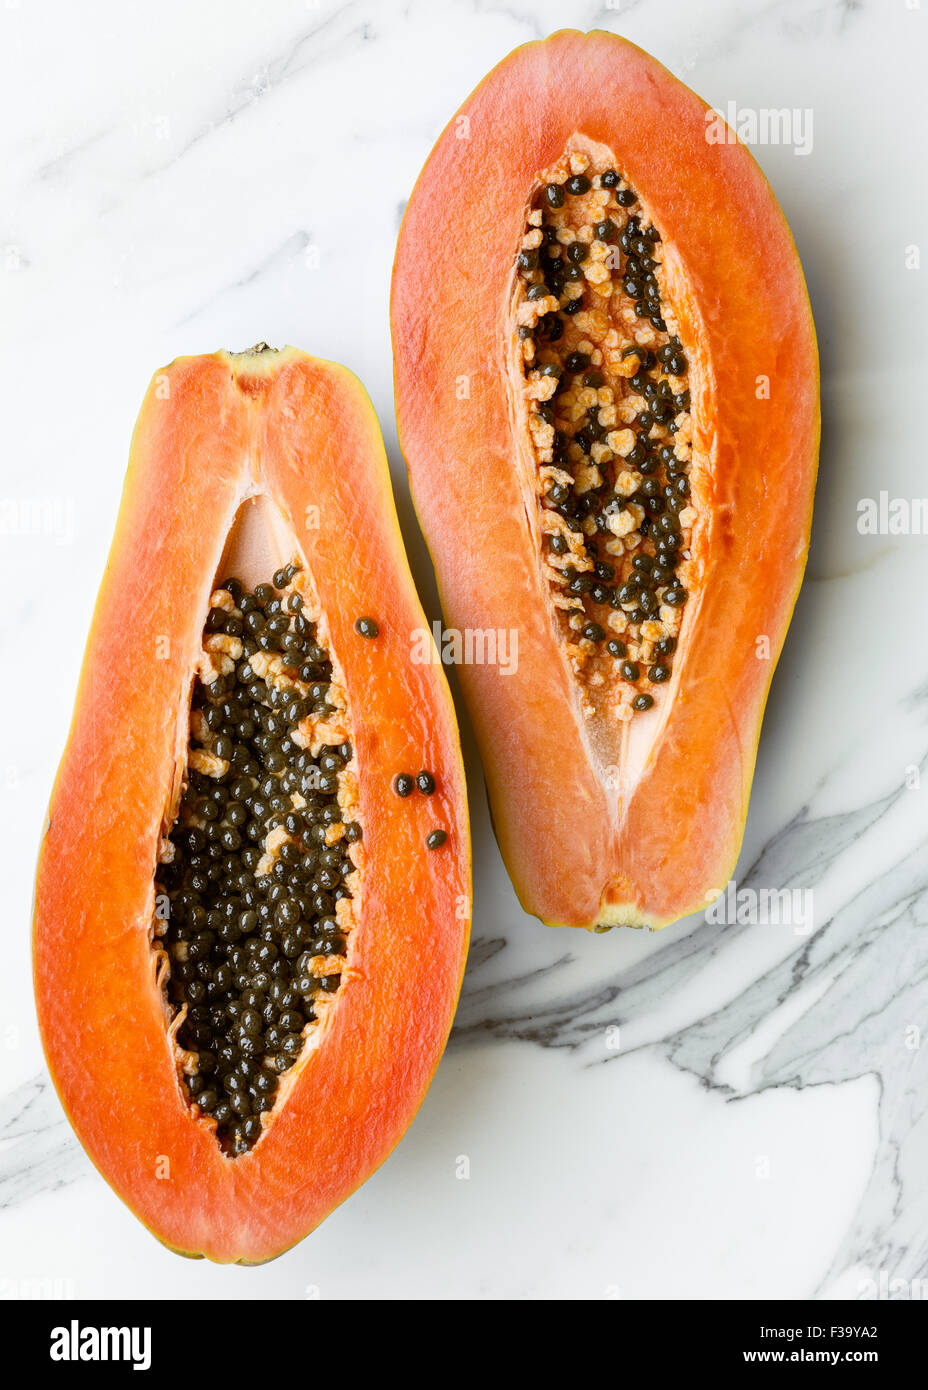 a papaya cut in half on marble surface stock photo 88114826 alamy